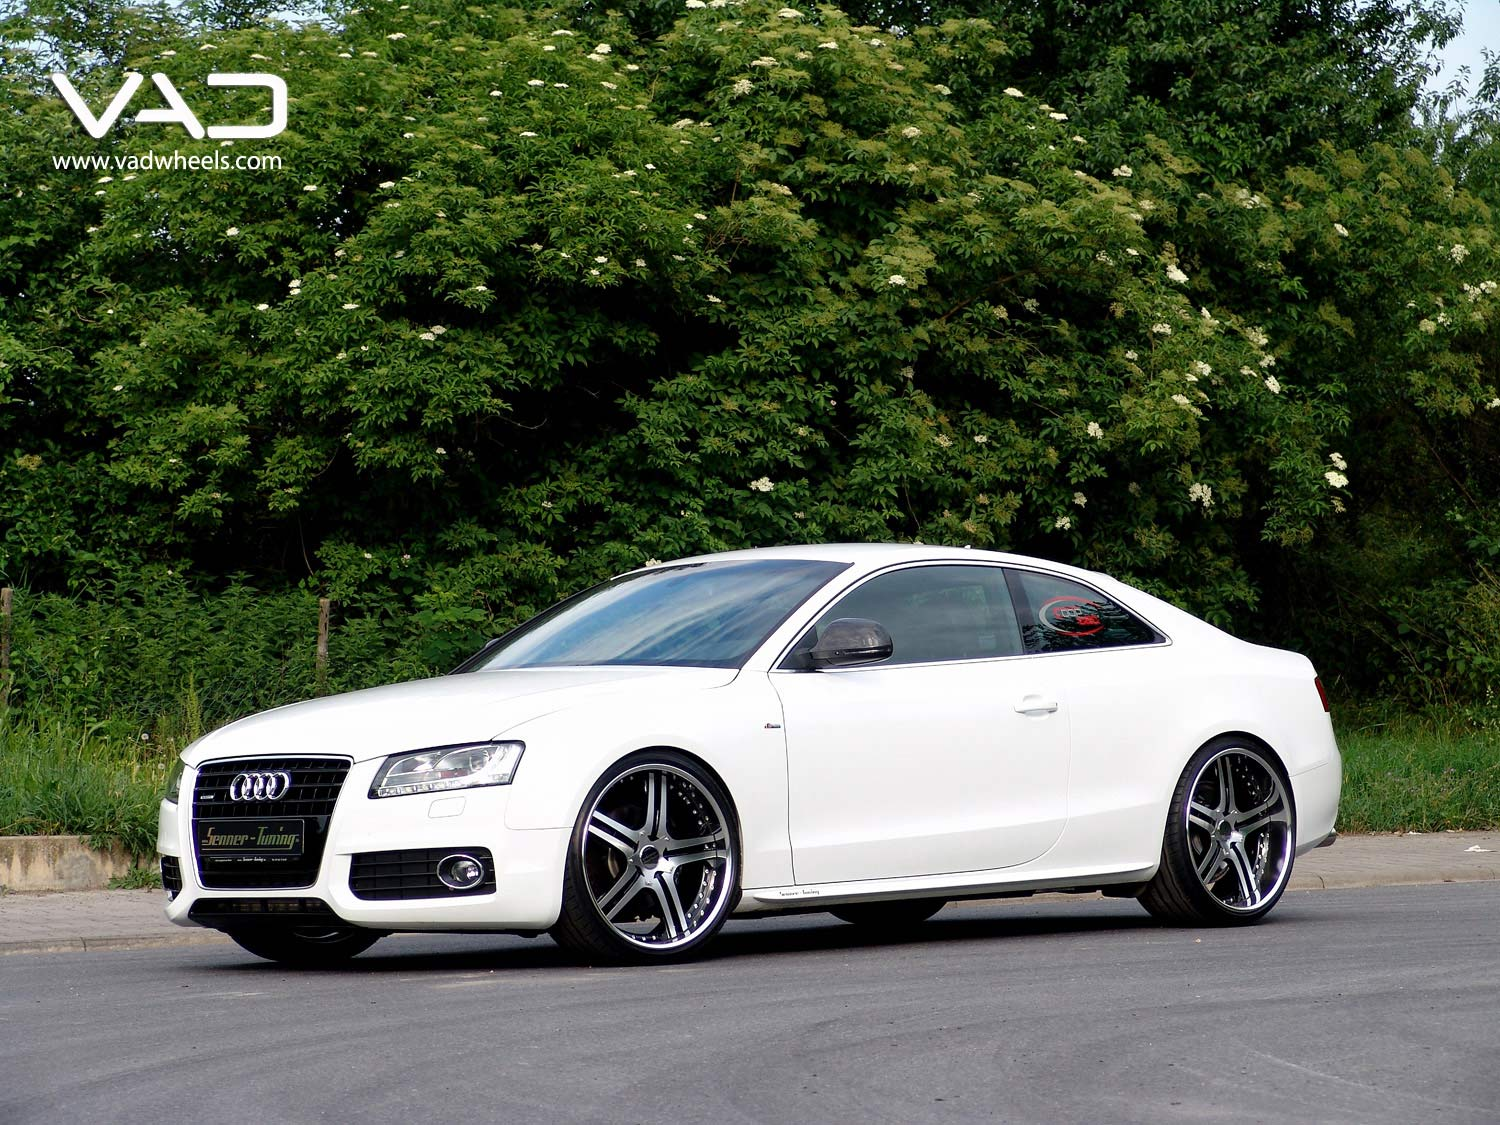 Audi-A5-21''Altstadt-S250--Polished